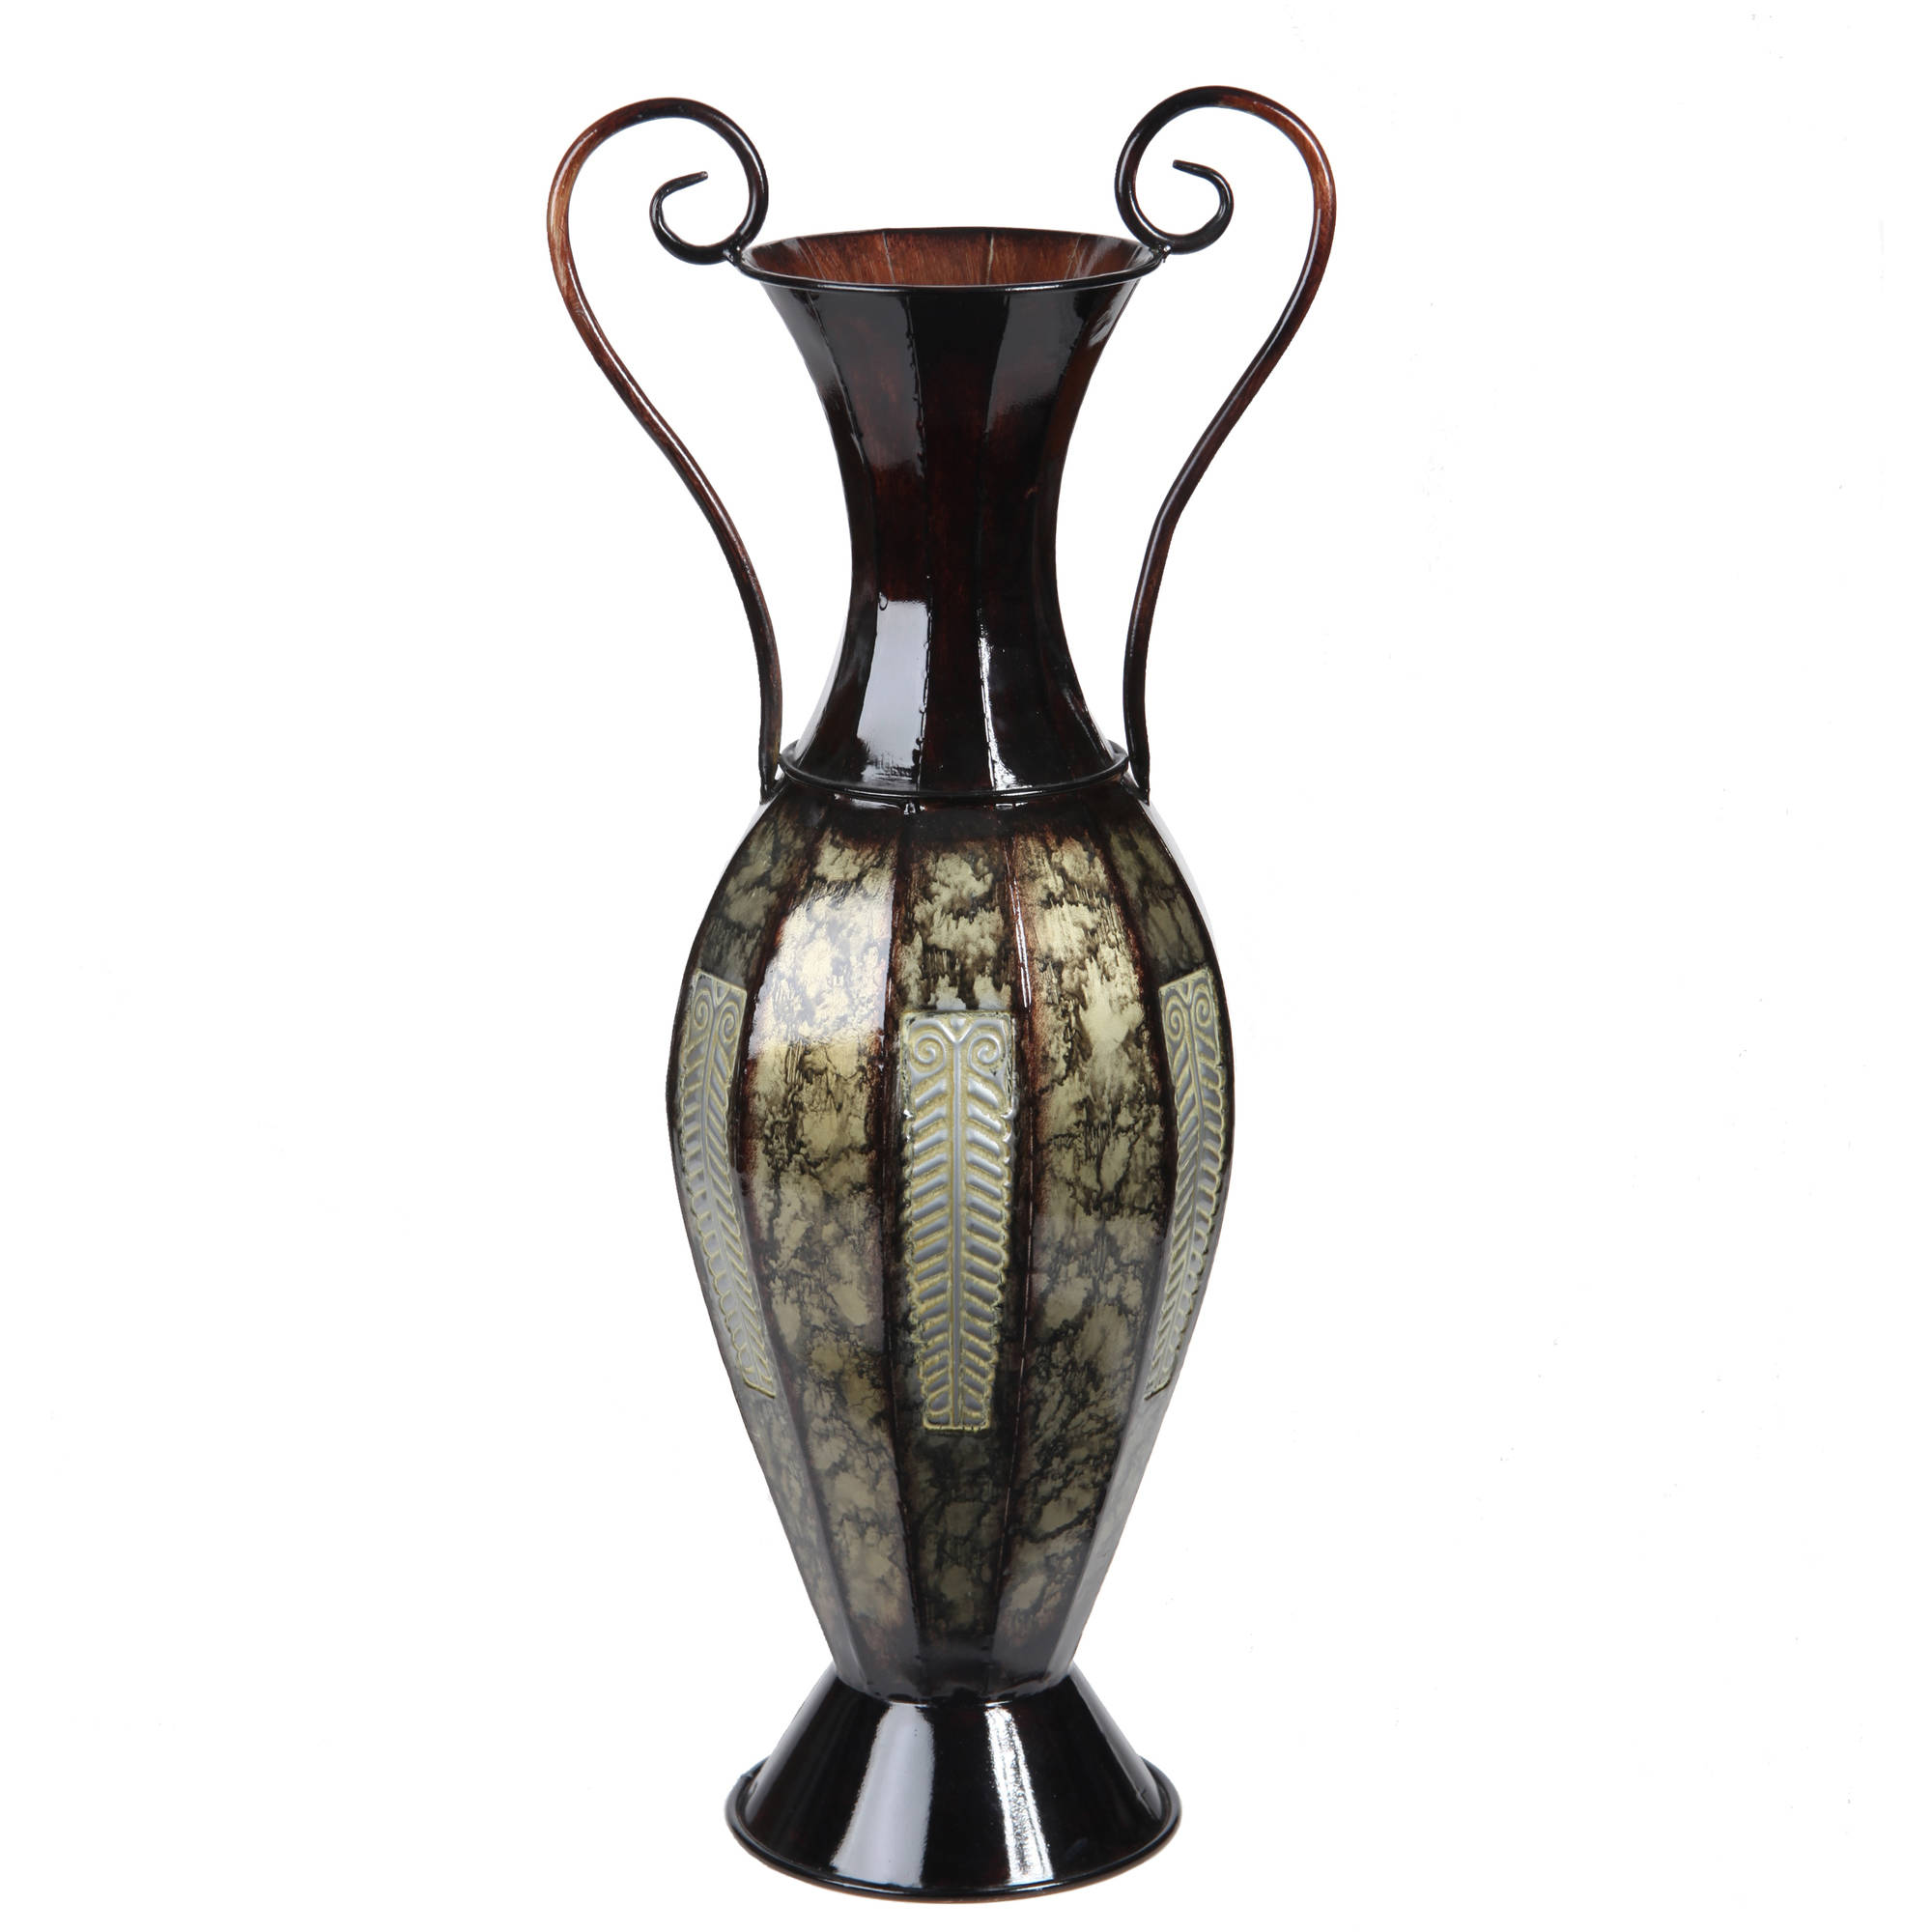 Elegant Expressions by Hosley 2-Tone Metal Vase with Handles, Black and Silver by Generic